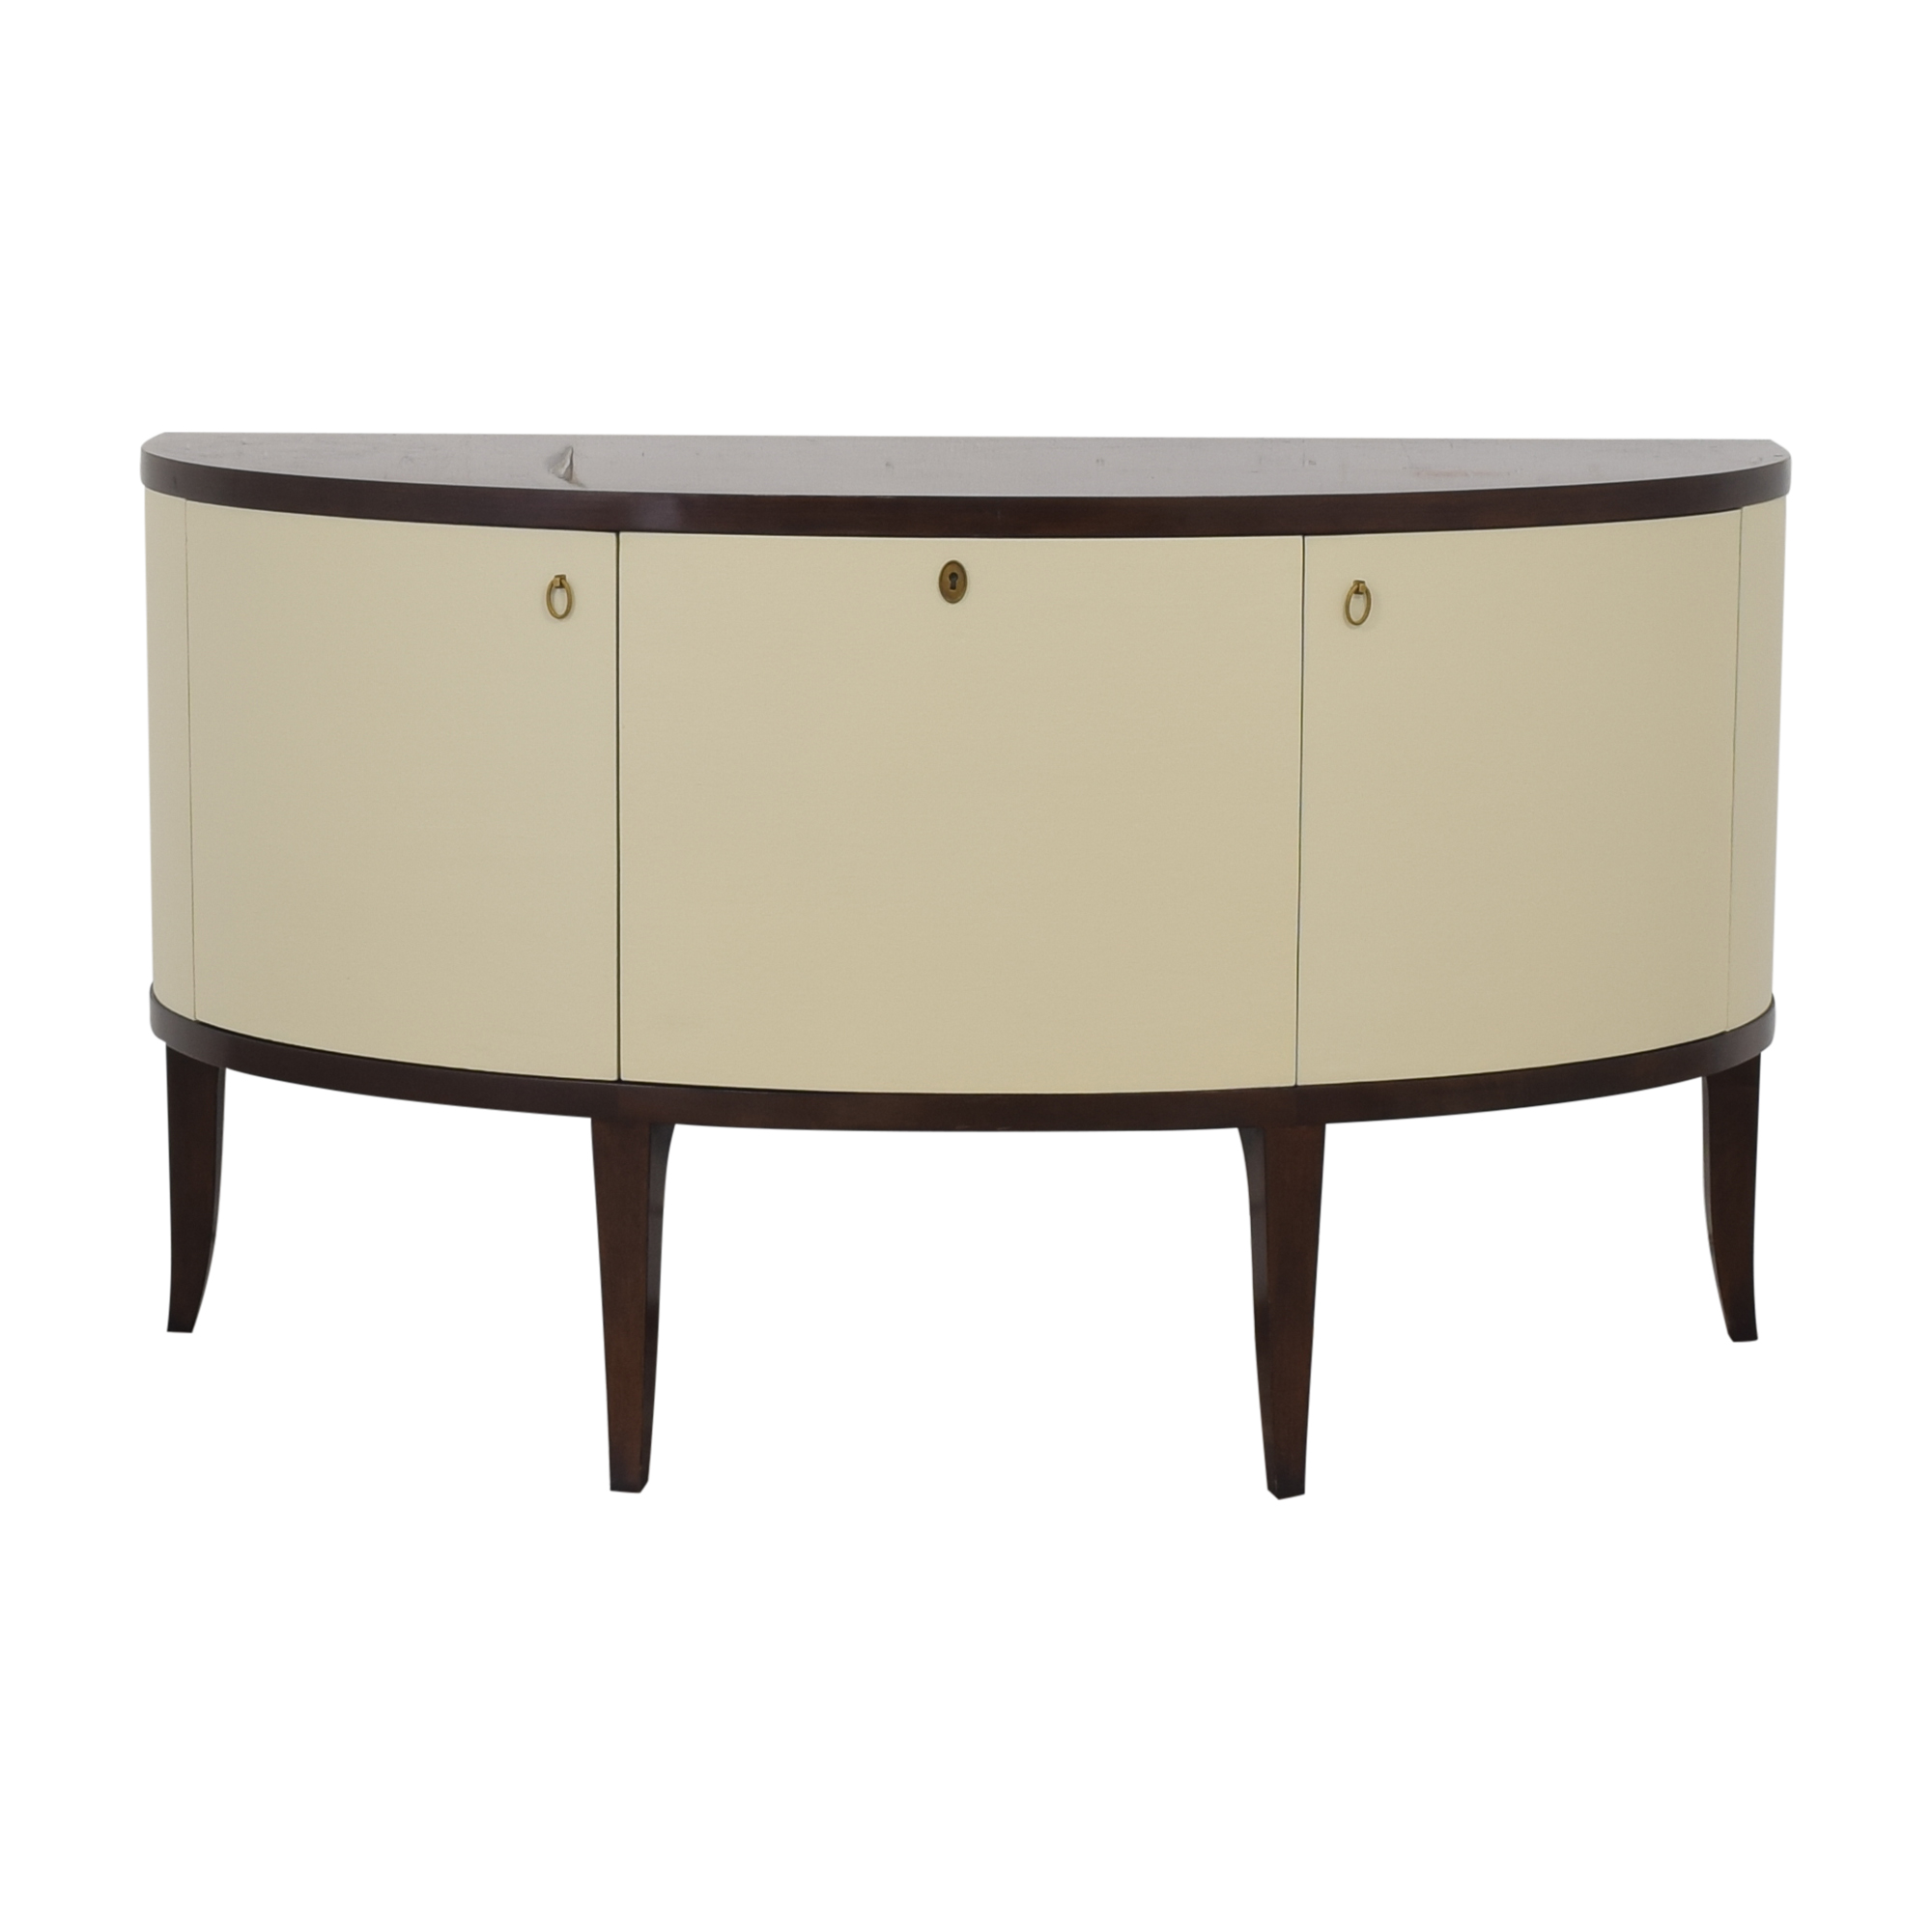 Henredon Furniture Barbara Barry for Henredon Demilune Console Table nyc